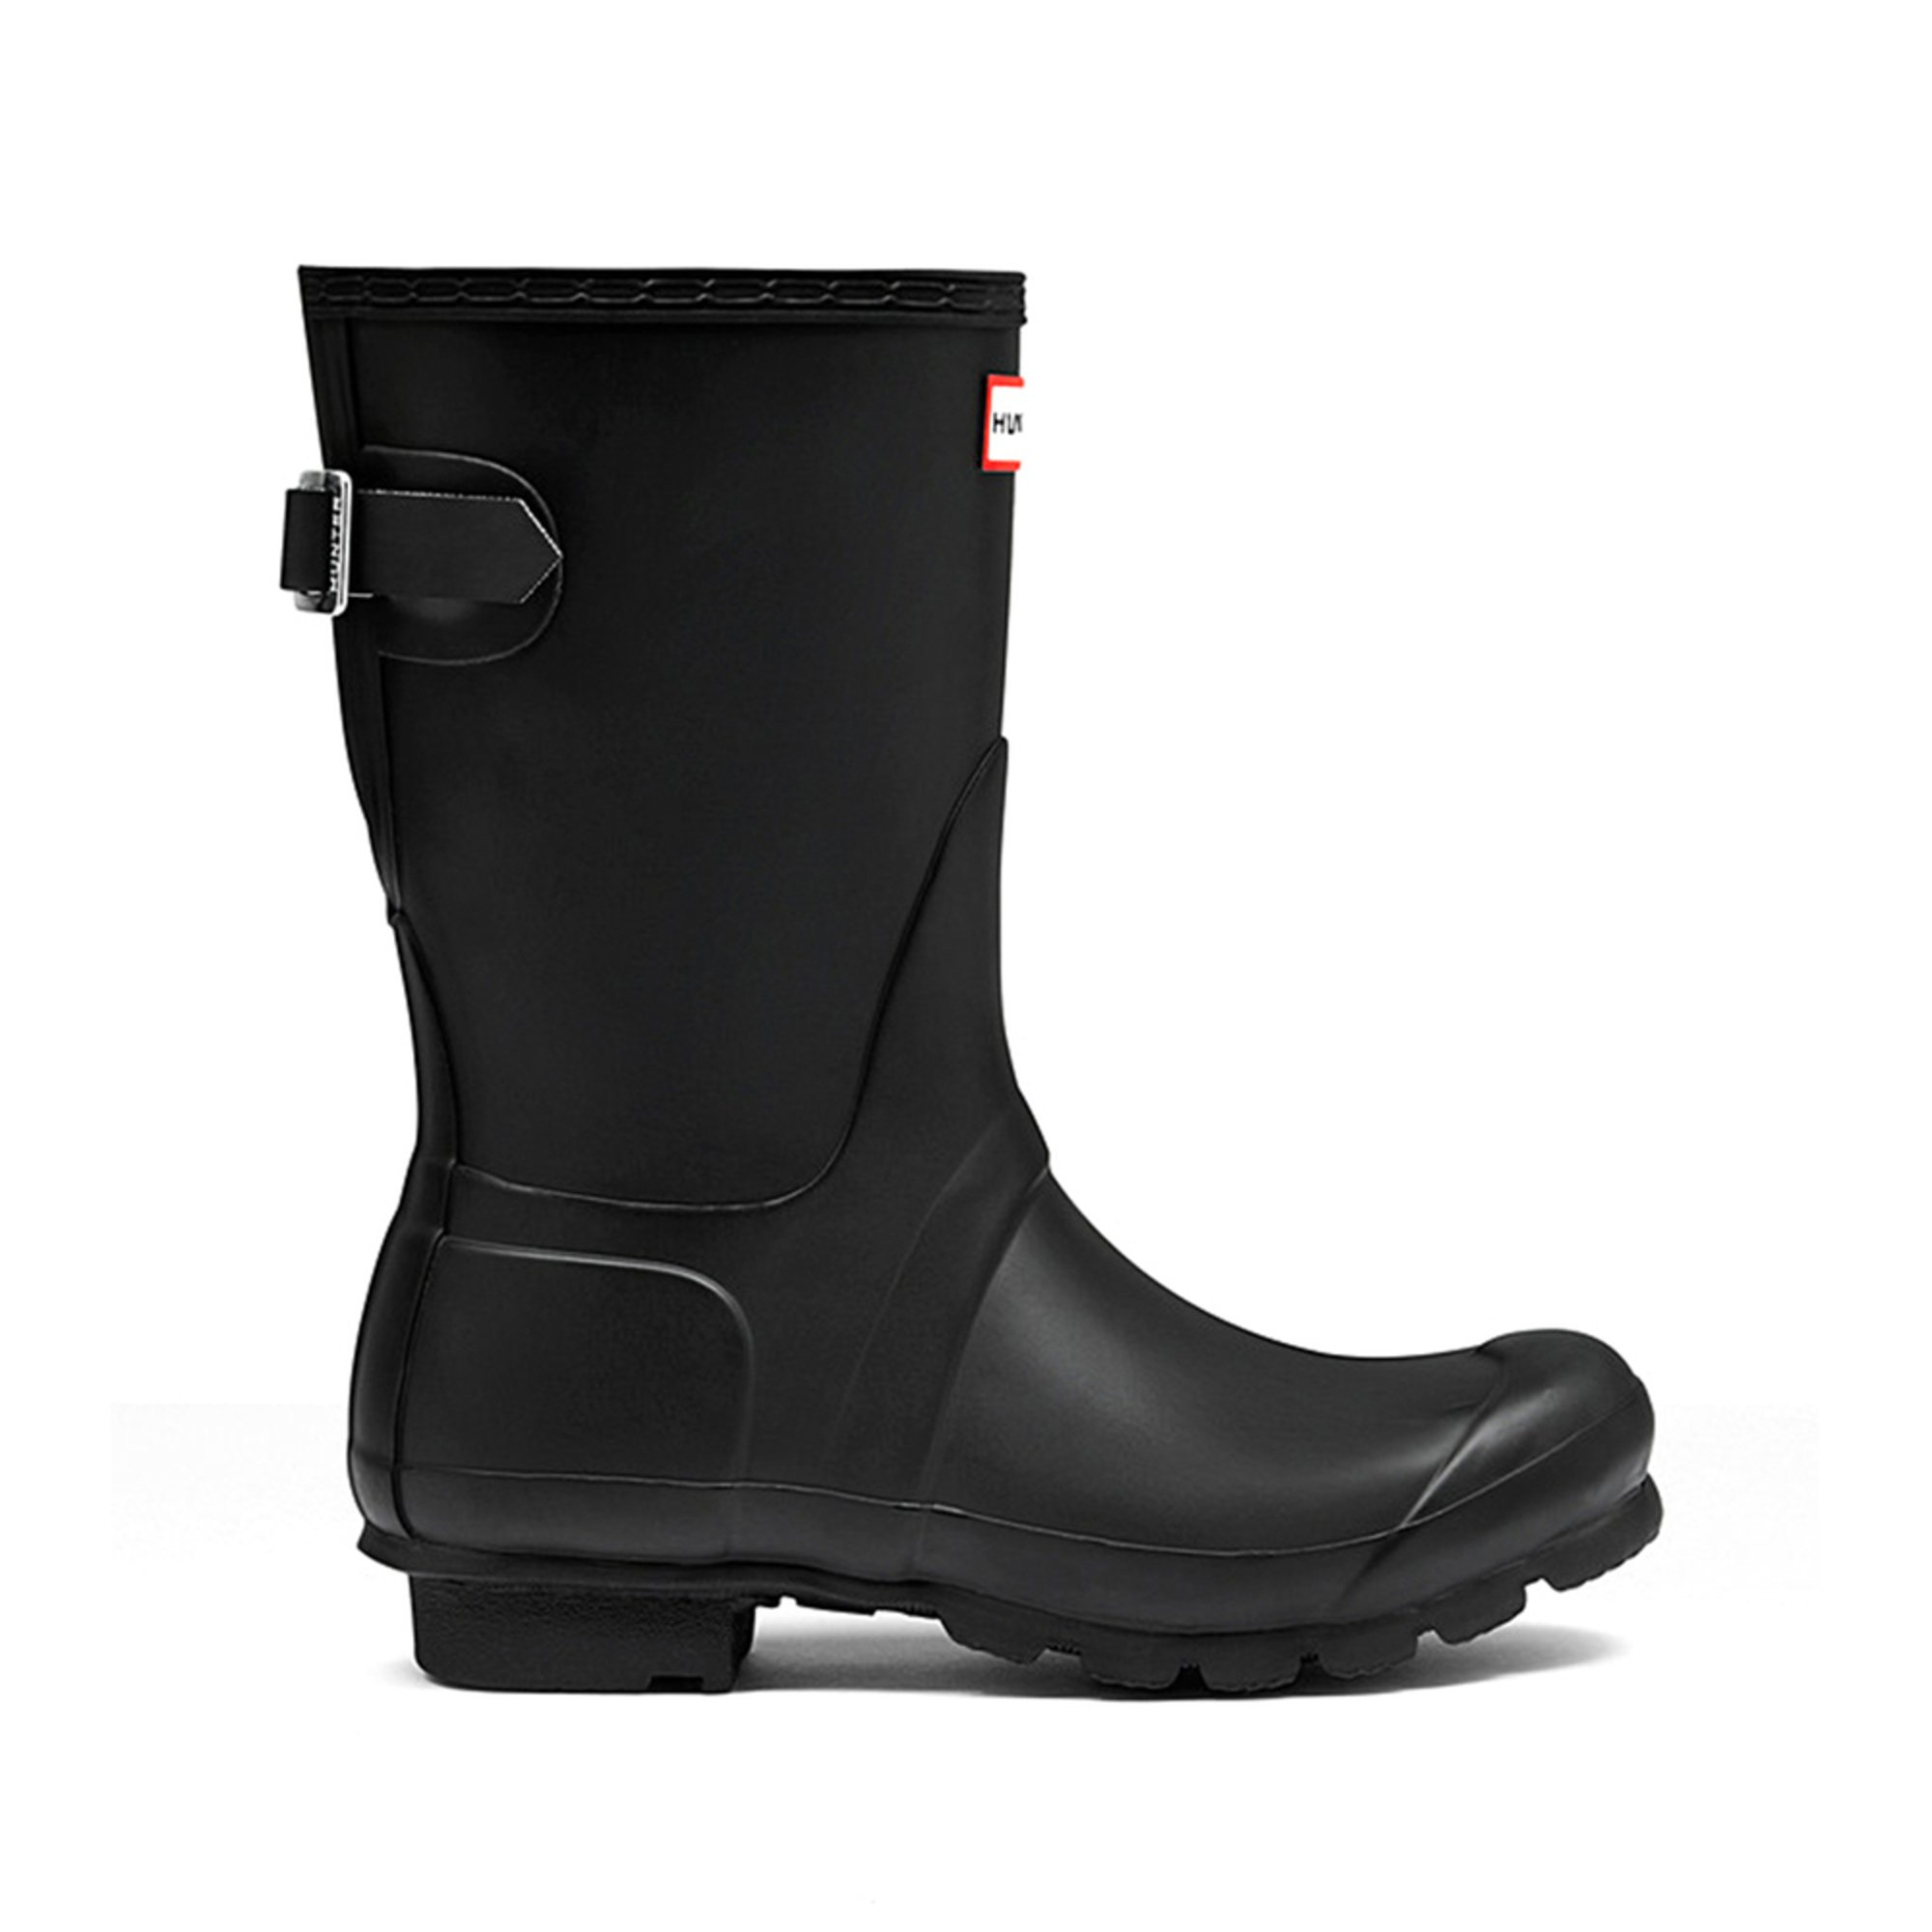 98b3a26fc3f Hunter Boot Women's Original Short Rainboot | Women's Boots | Shoes ...